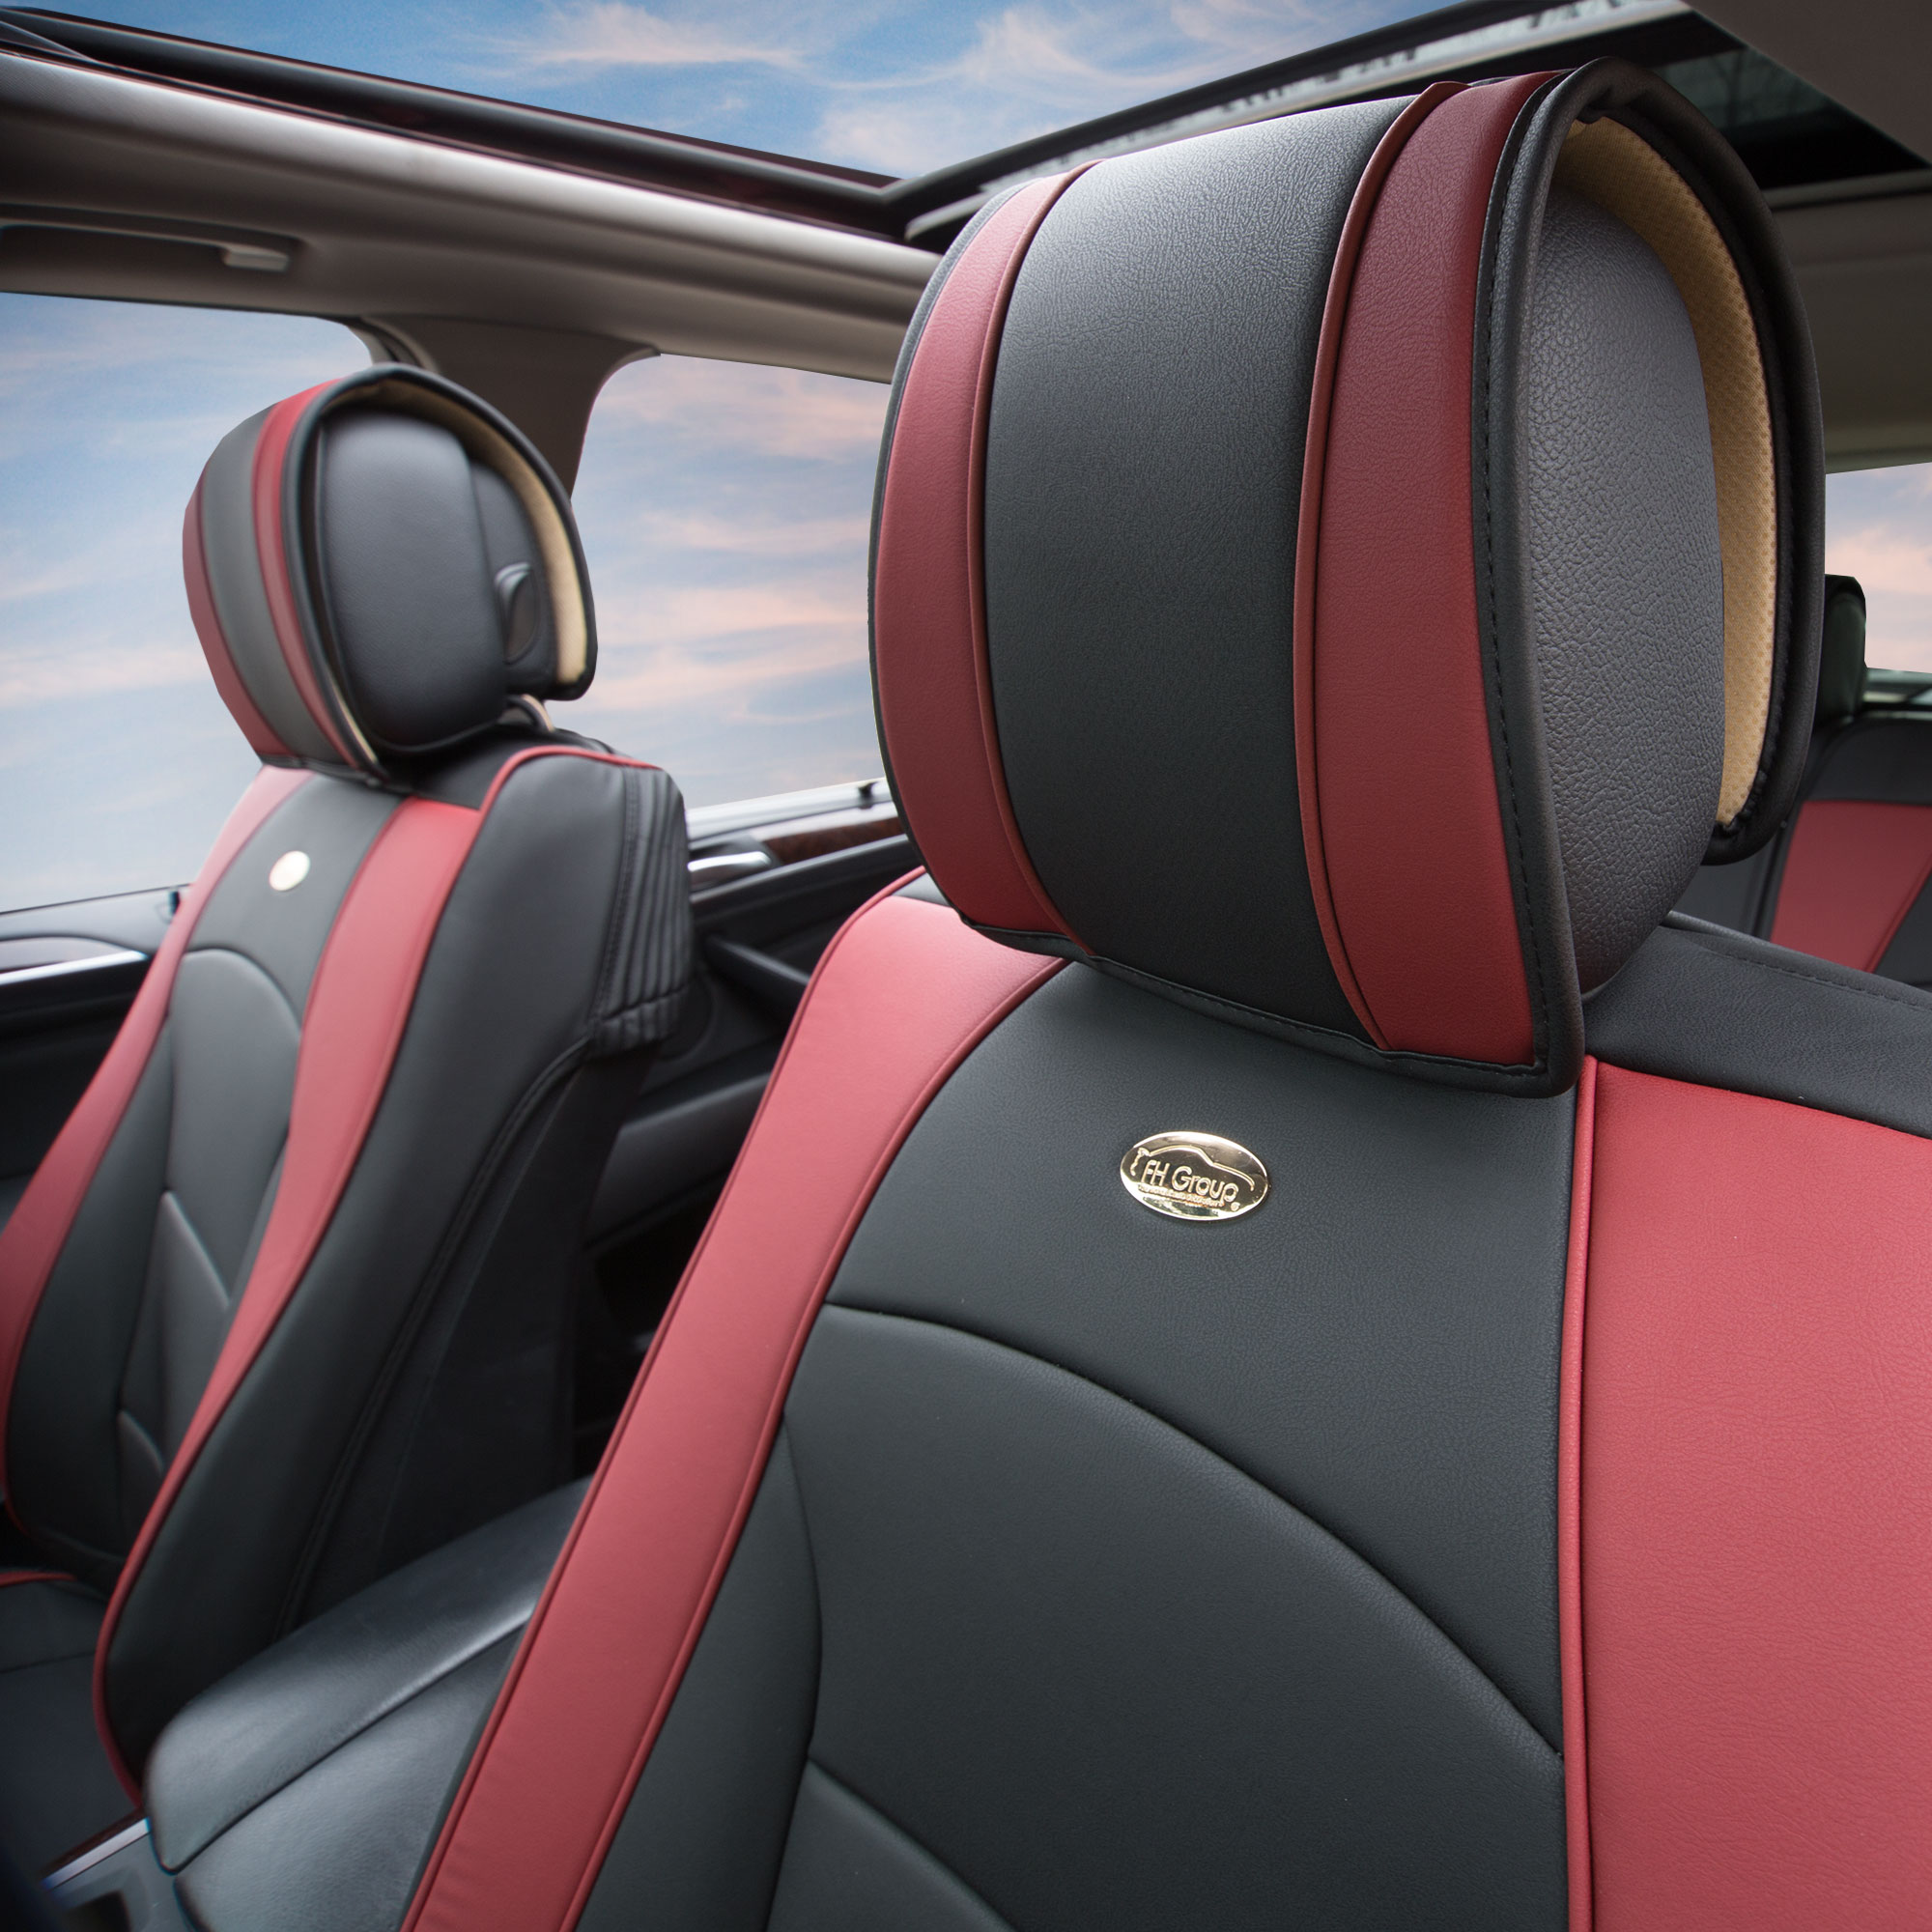 Luxury-Leather-Seat-Cushion-Covers-Front-Bucket-Pair-11-Color-Options thumbnail 28